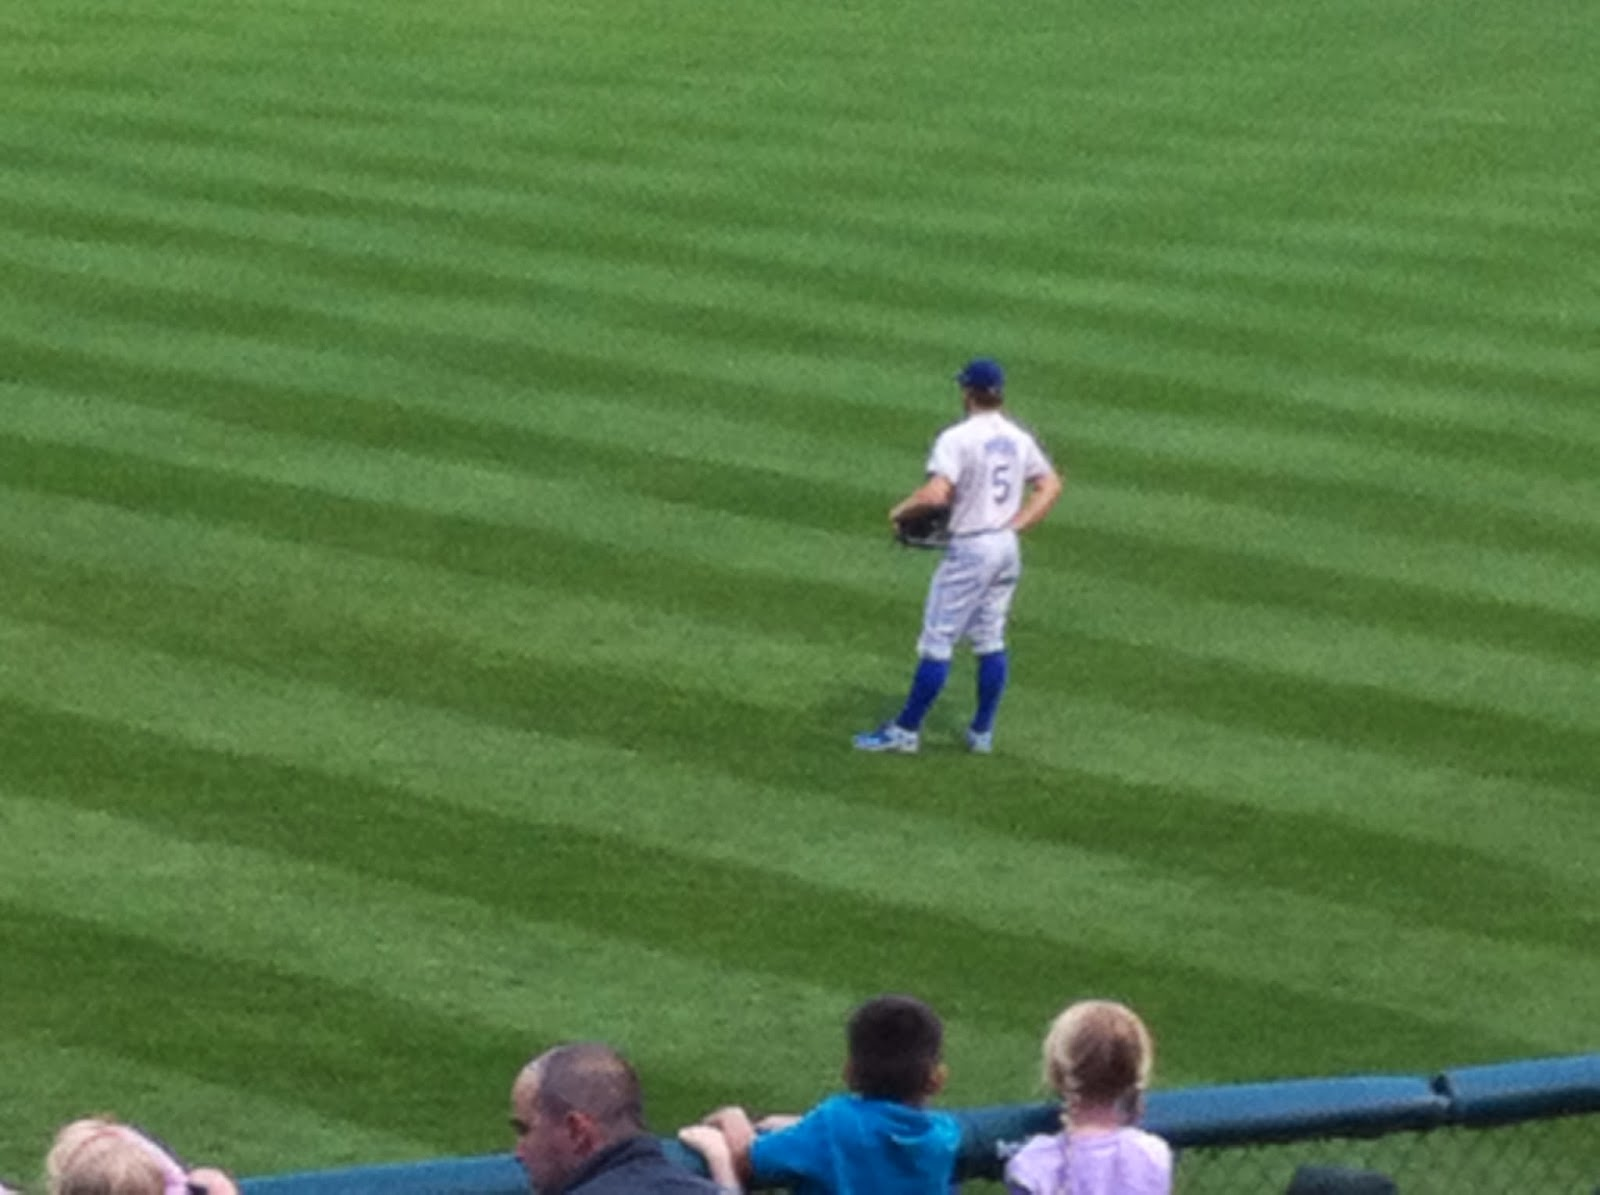 Wil Myers, RF - Victory Field - Indianapolis